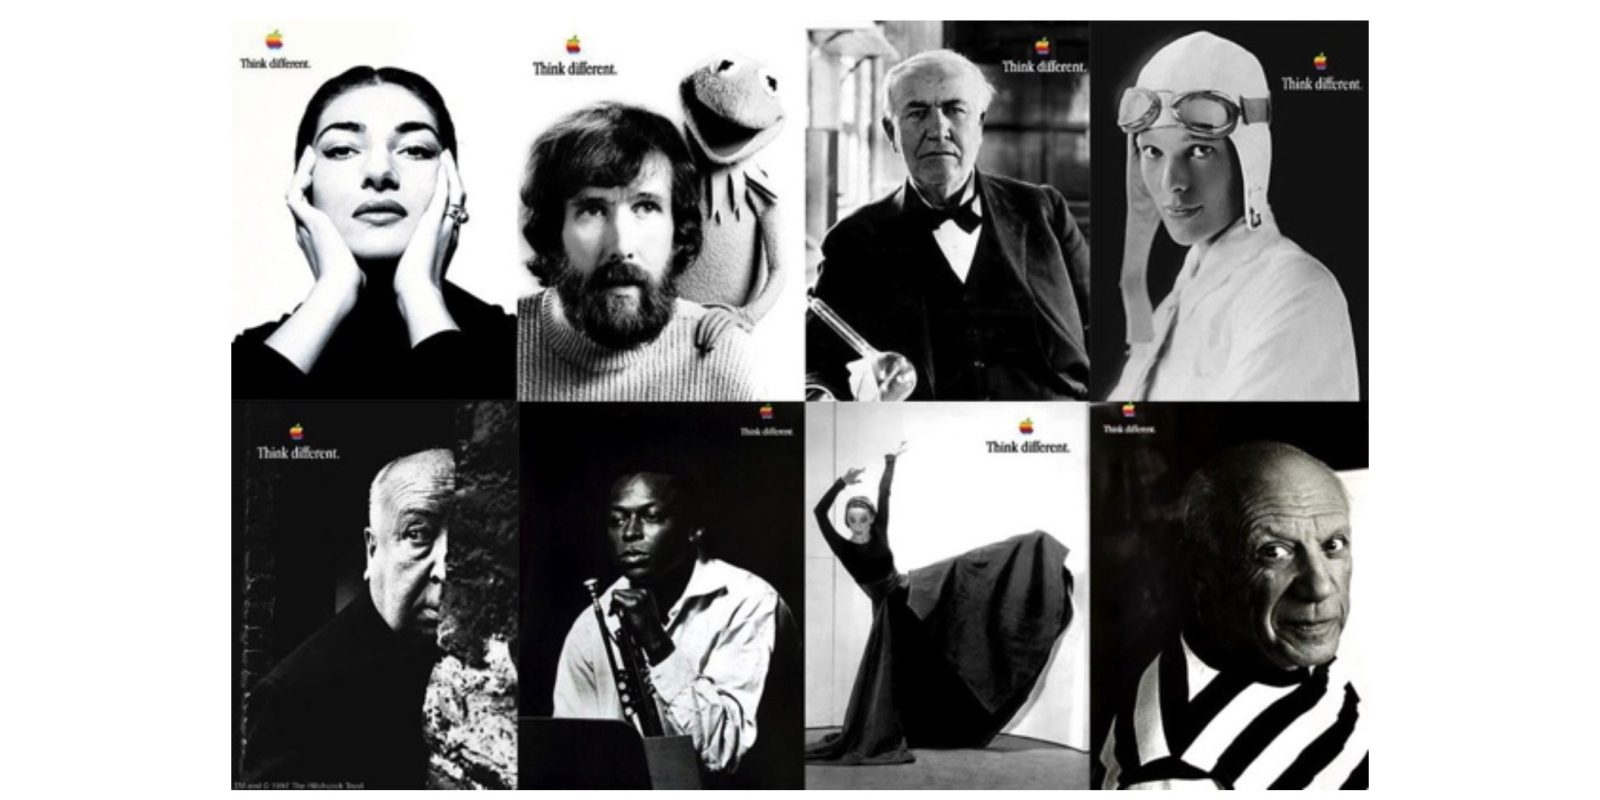 Lee Clow, mastermind behind Apple's 'Think Different' & 'Get a Mac' campaigns retires